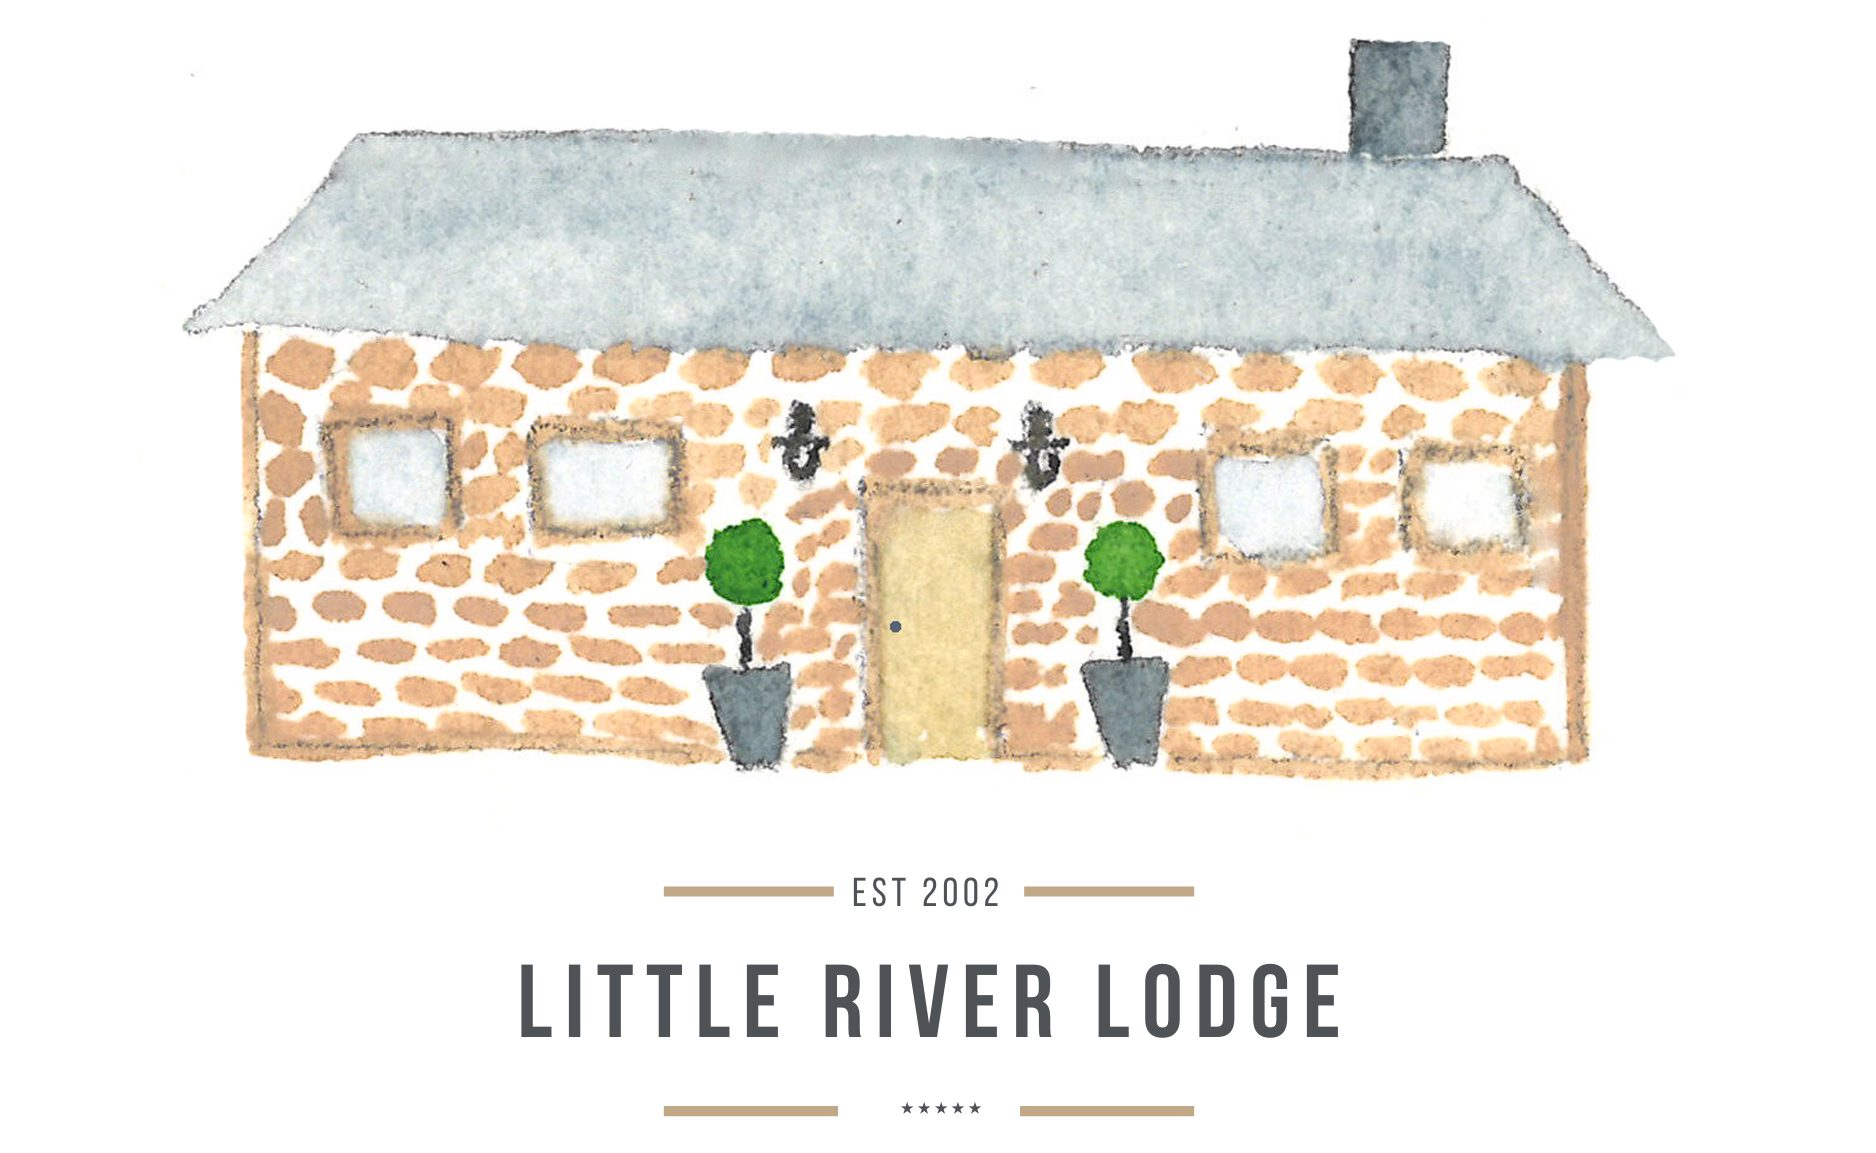 Little River Lodge Tumut